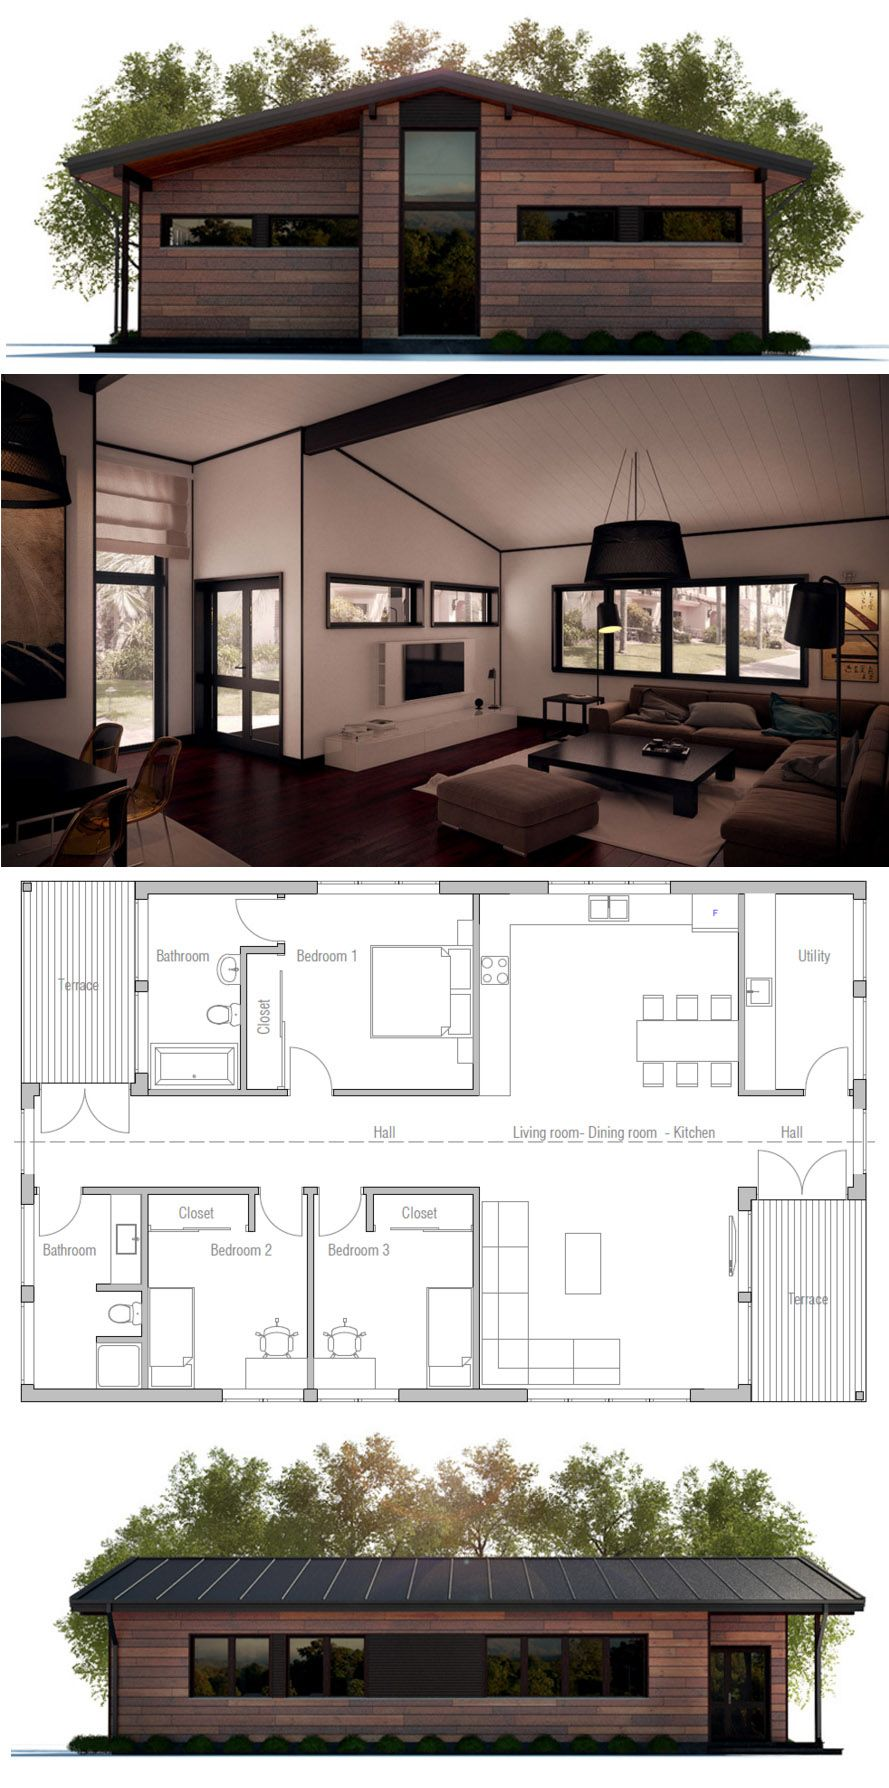 Small home plan floor house designs new homeplans also rh pinterest